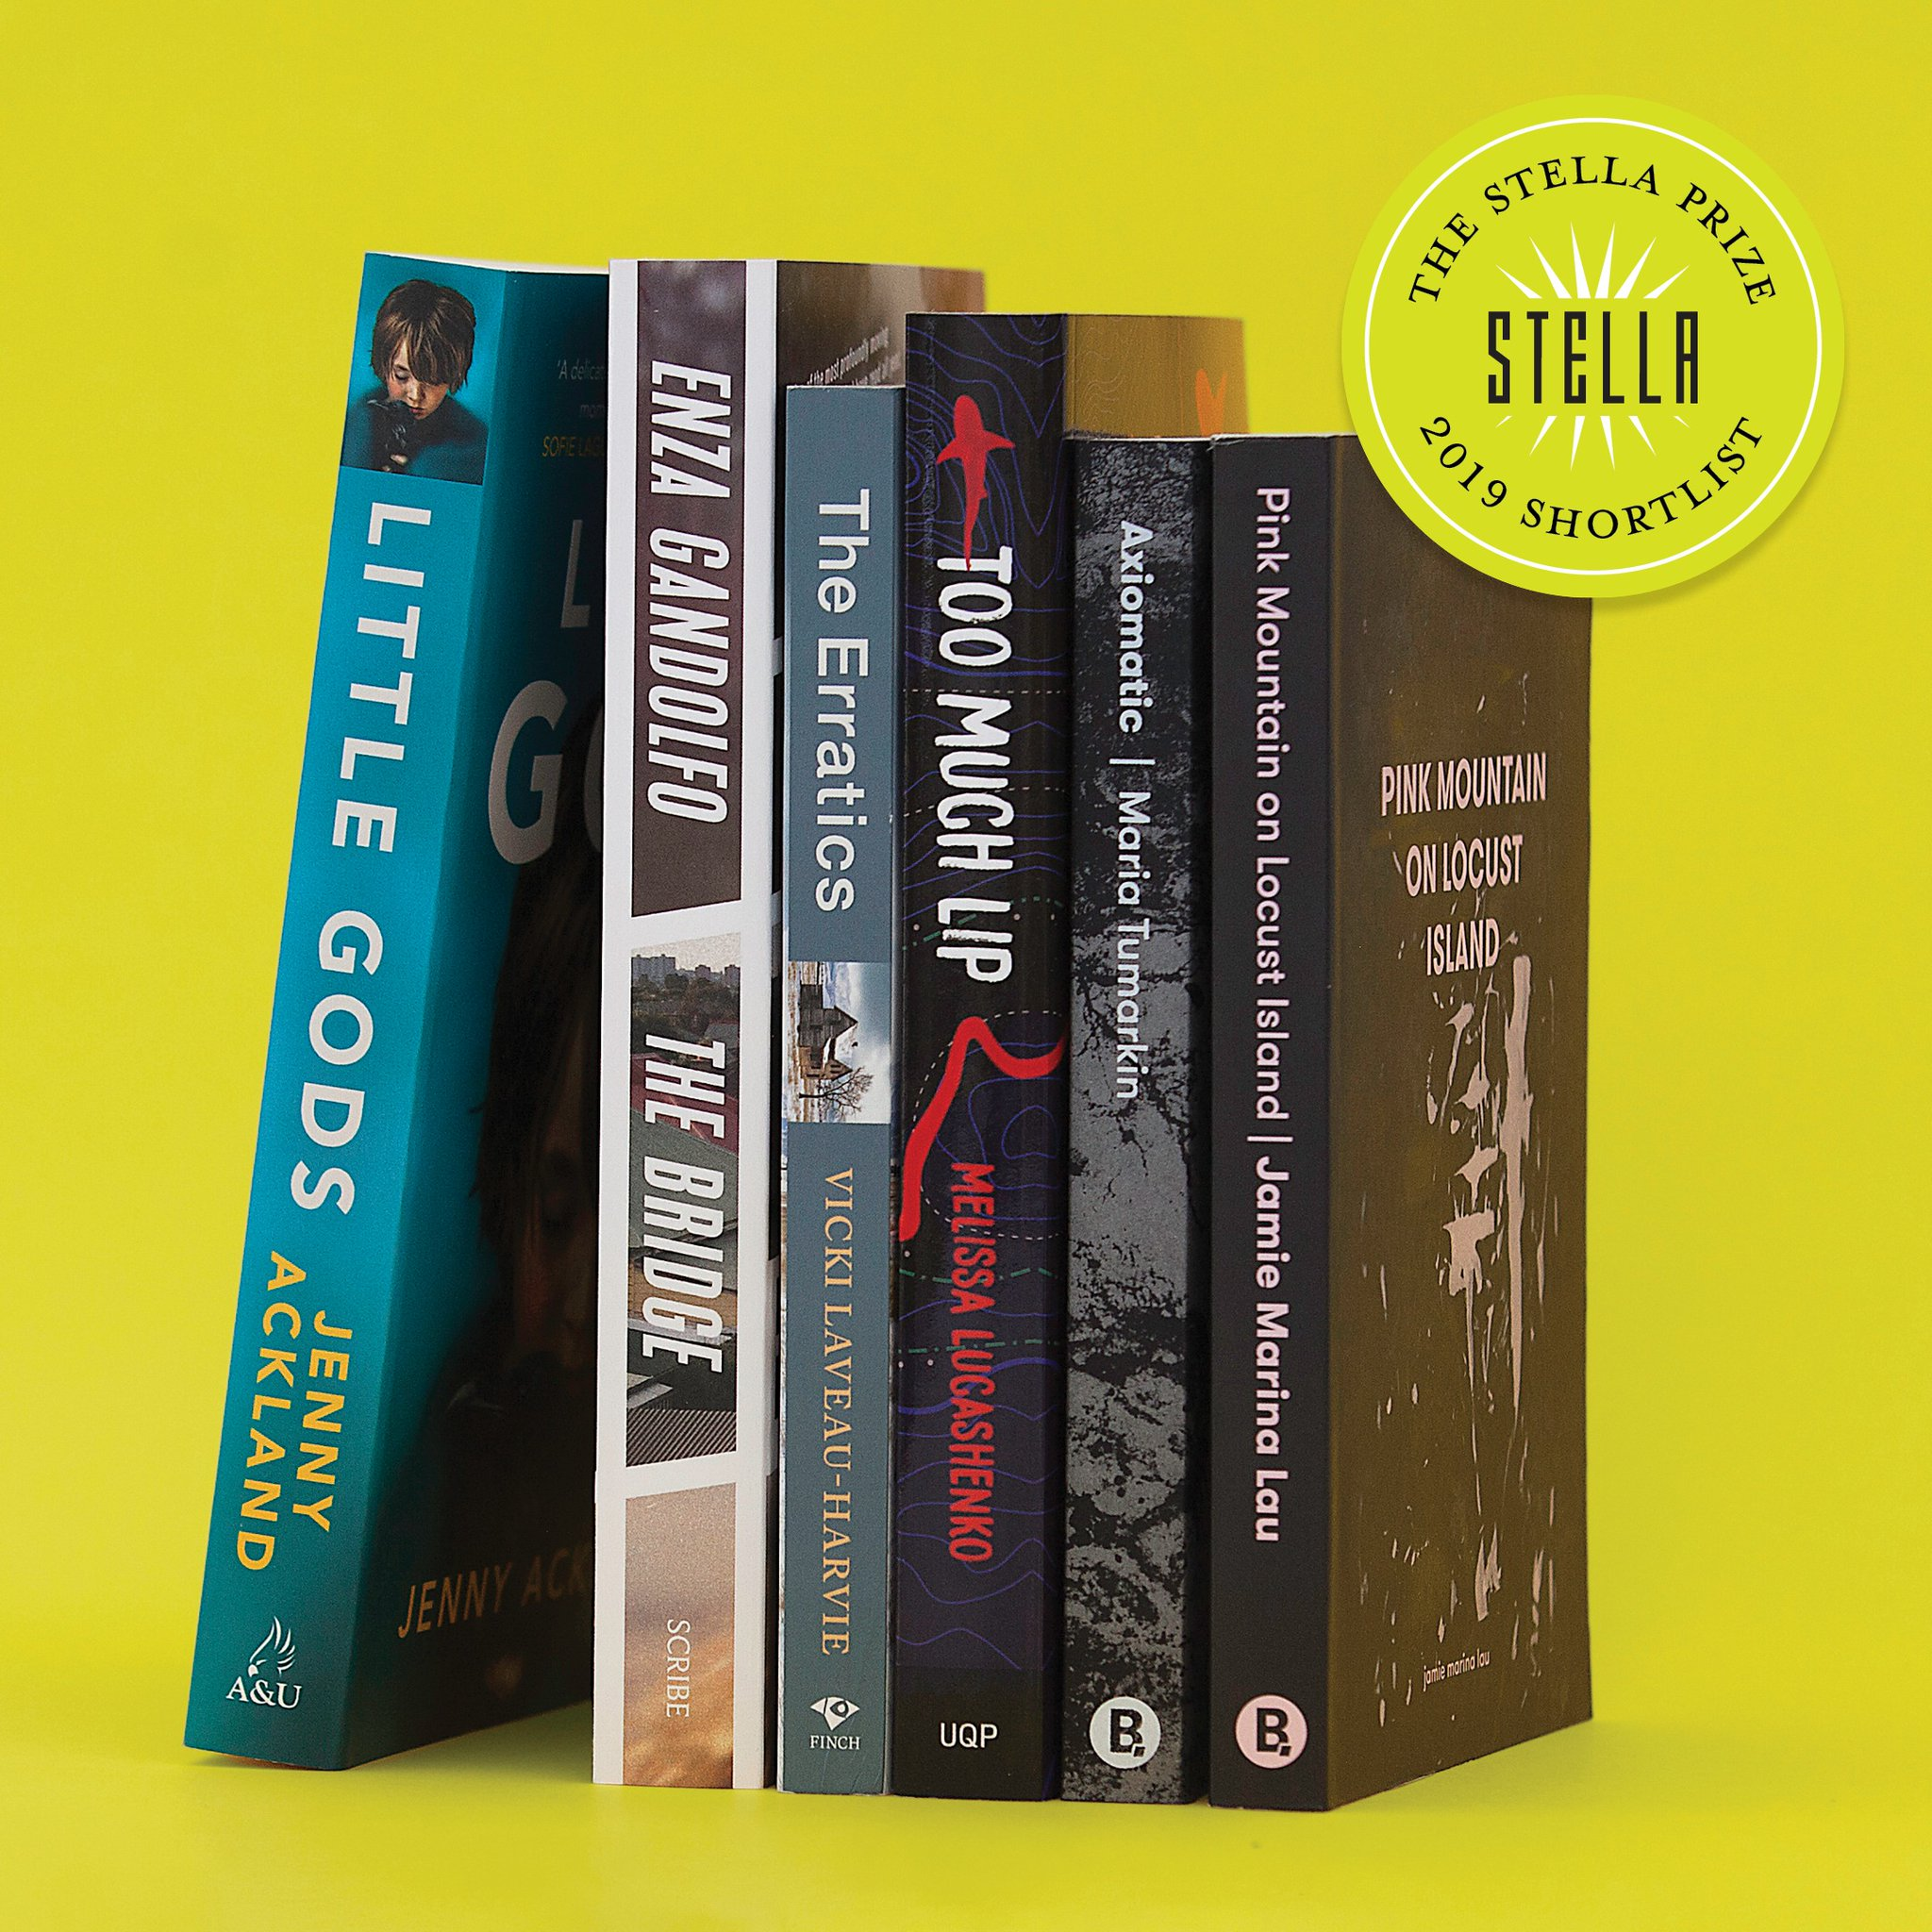 Stella shortlisted books.jpg